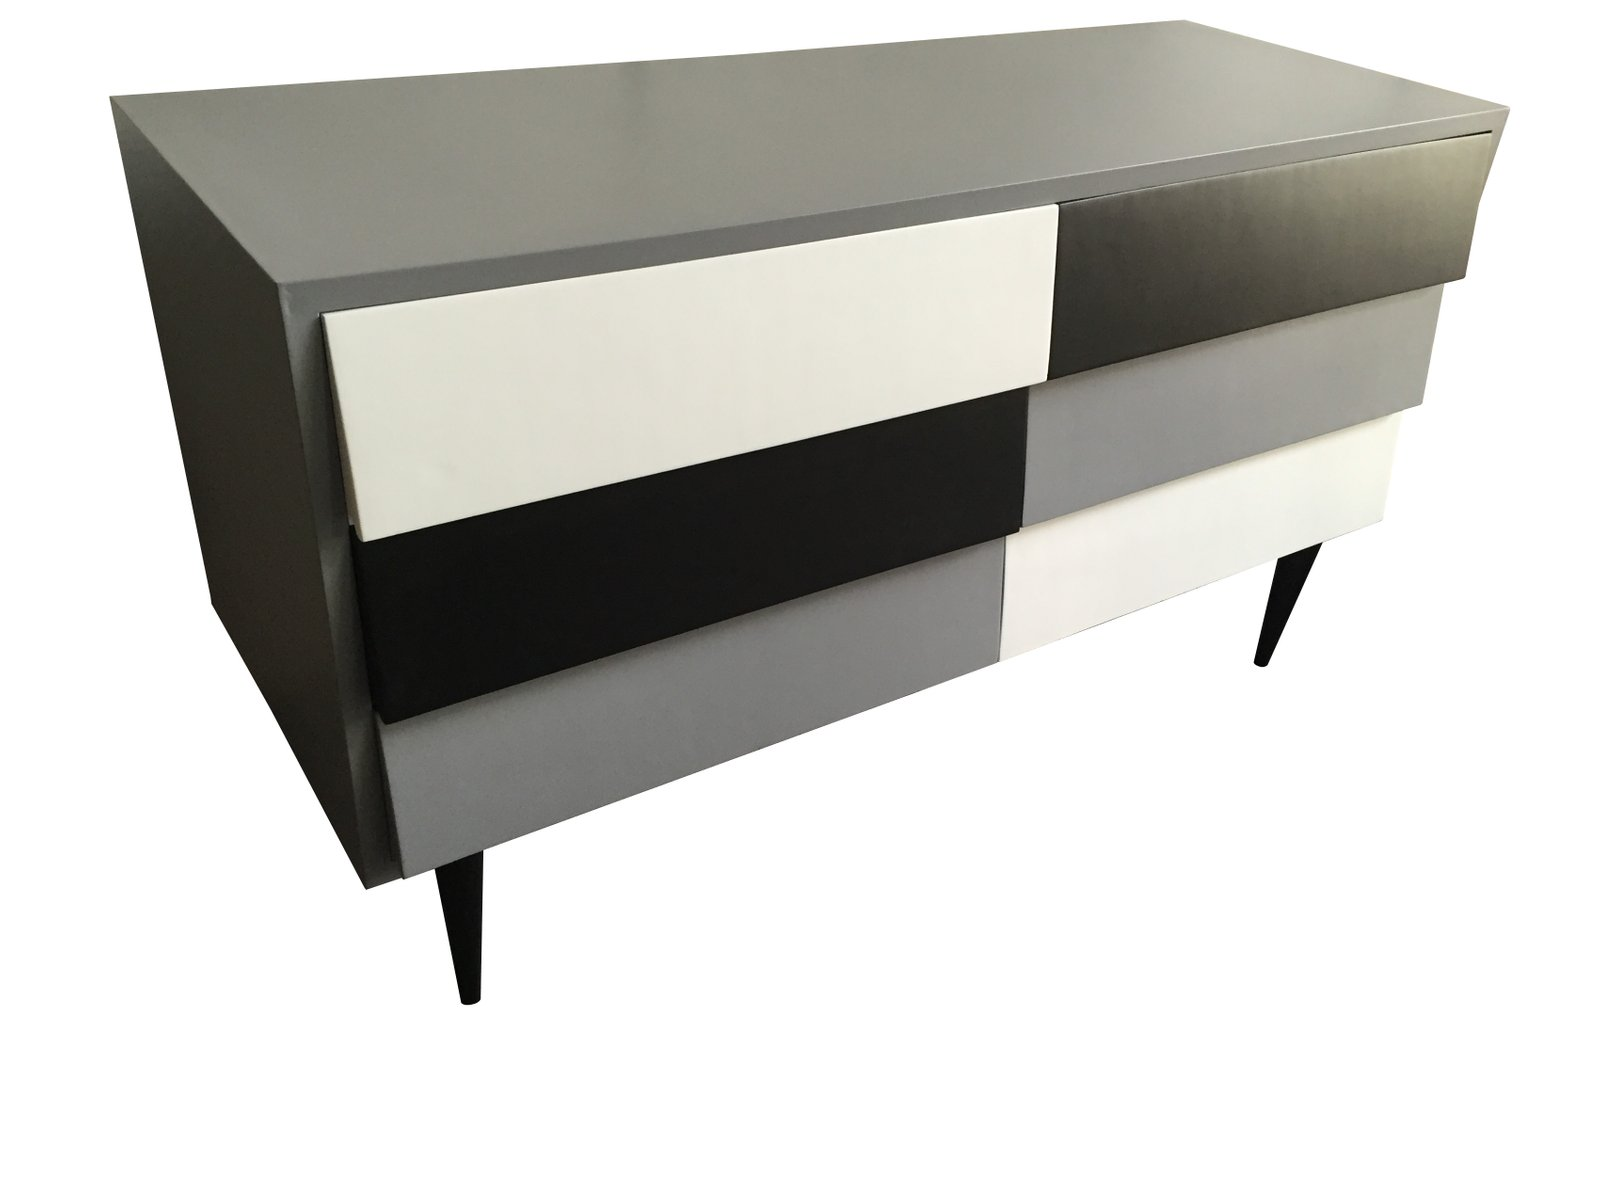 kommode in schwarz grau wei 1950er bei pamono kaufen. Black Bedroom Furniture Sets. Home Design Ideas